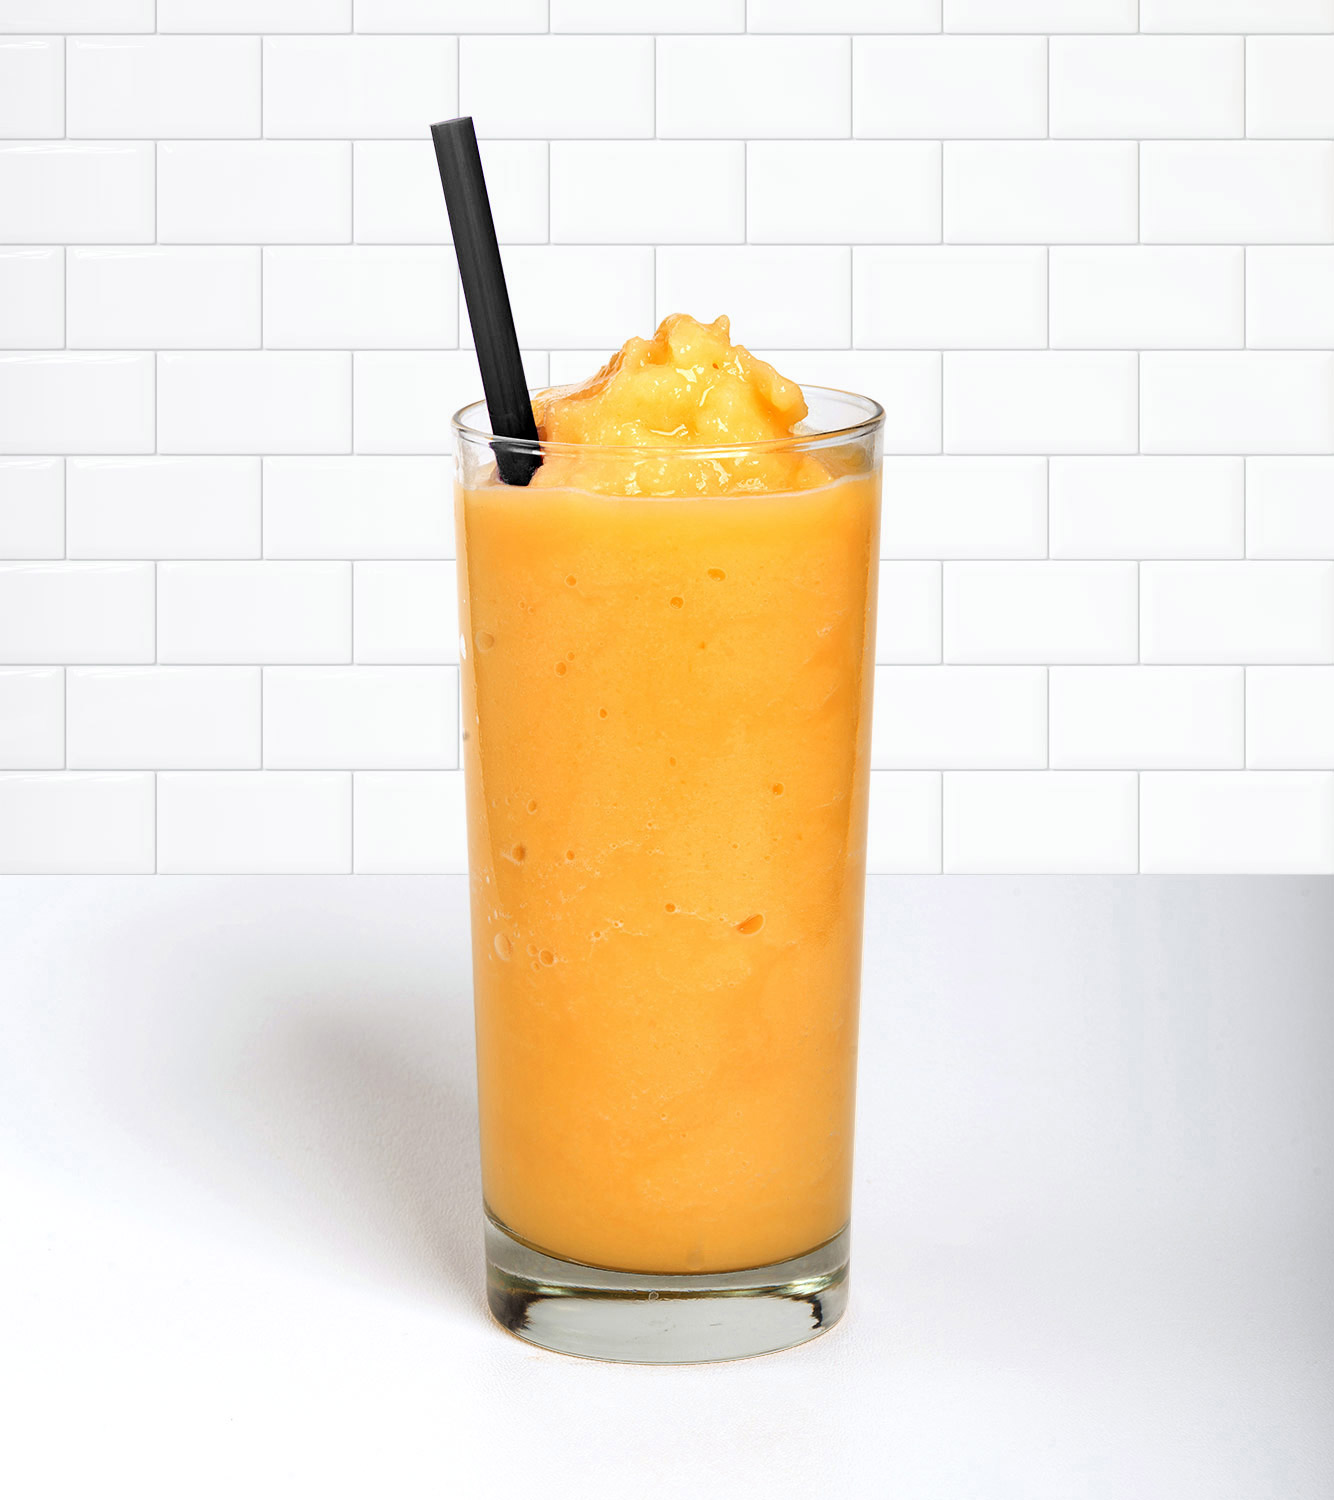 Mango Smoothie in a beverage container